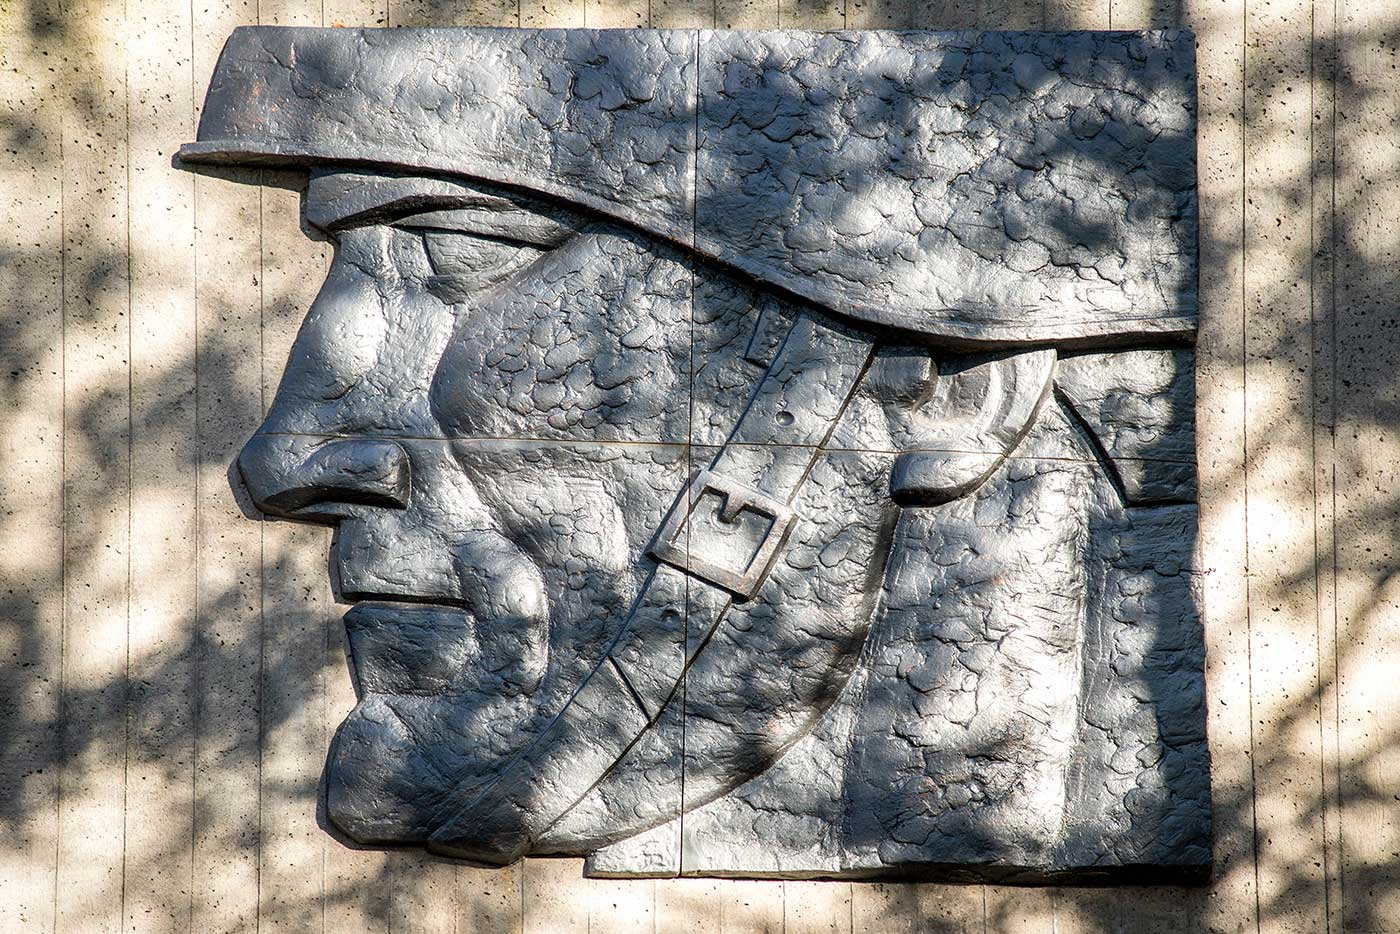 Soviet monument in Sillamäe, Estonia.